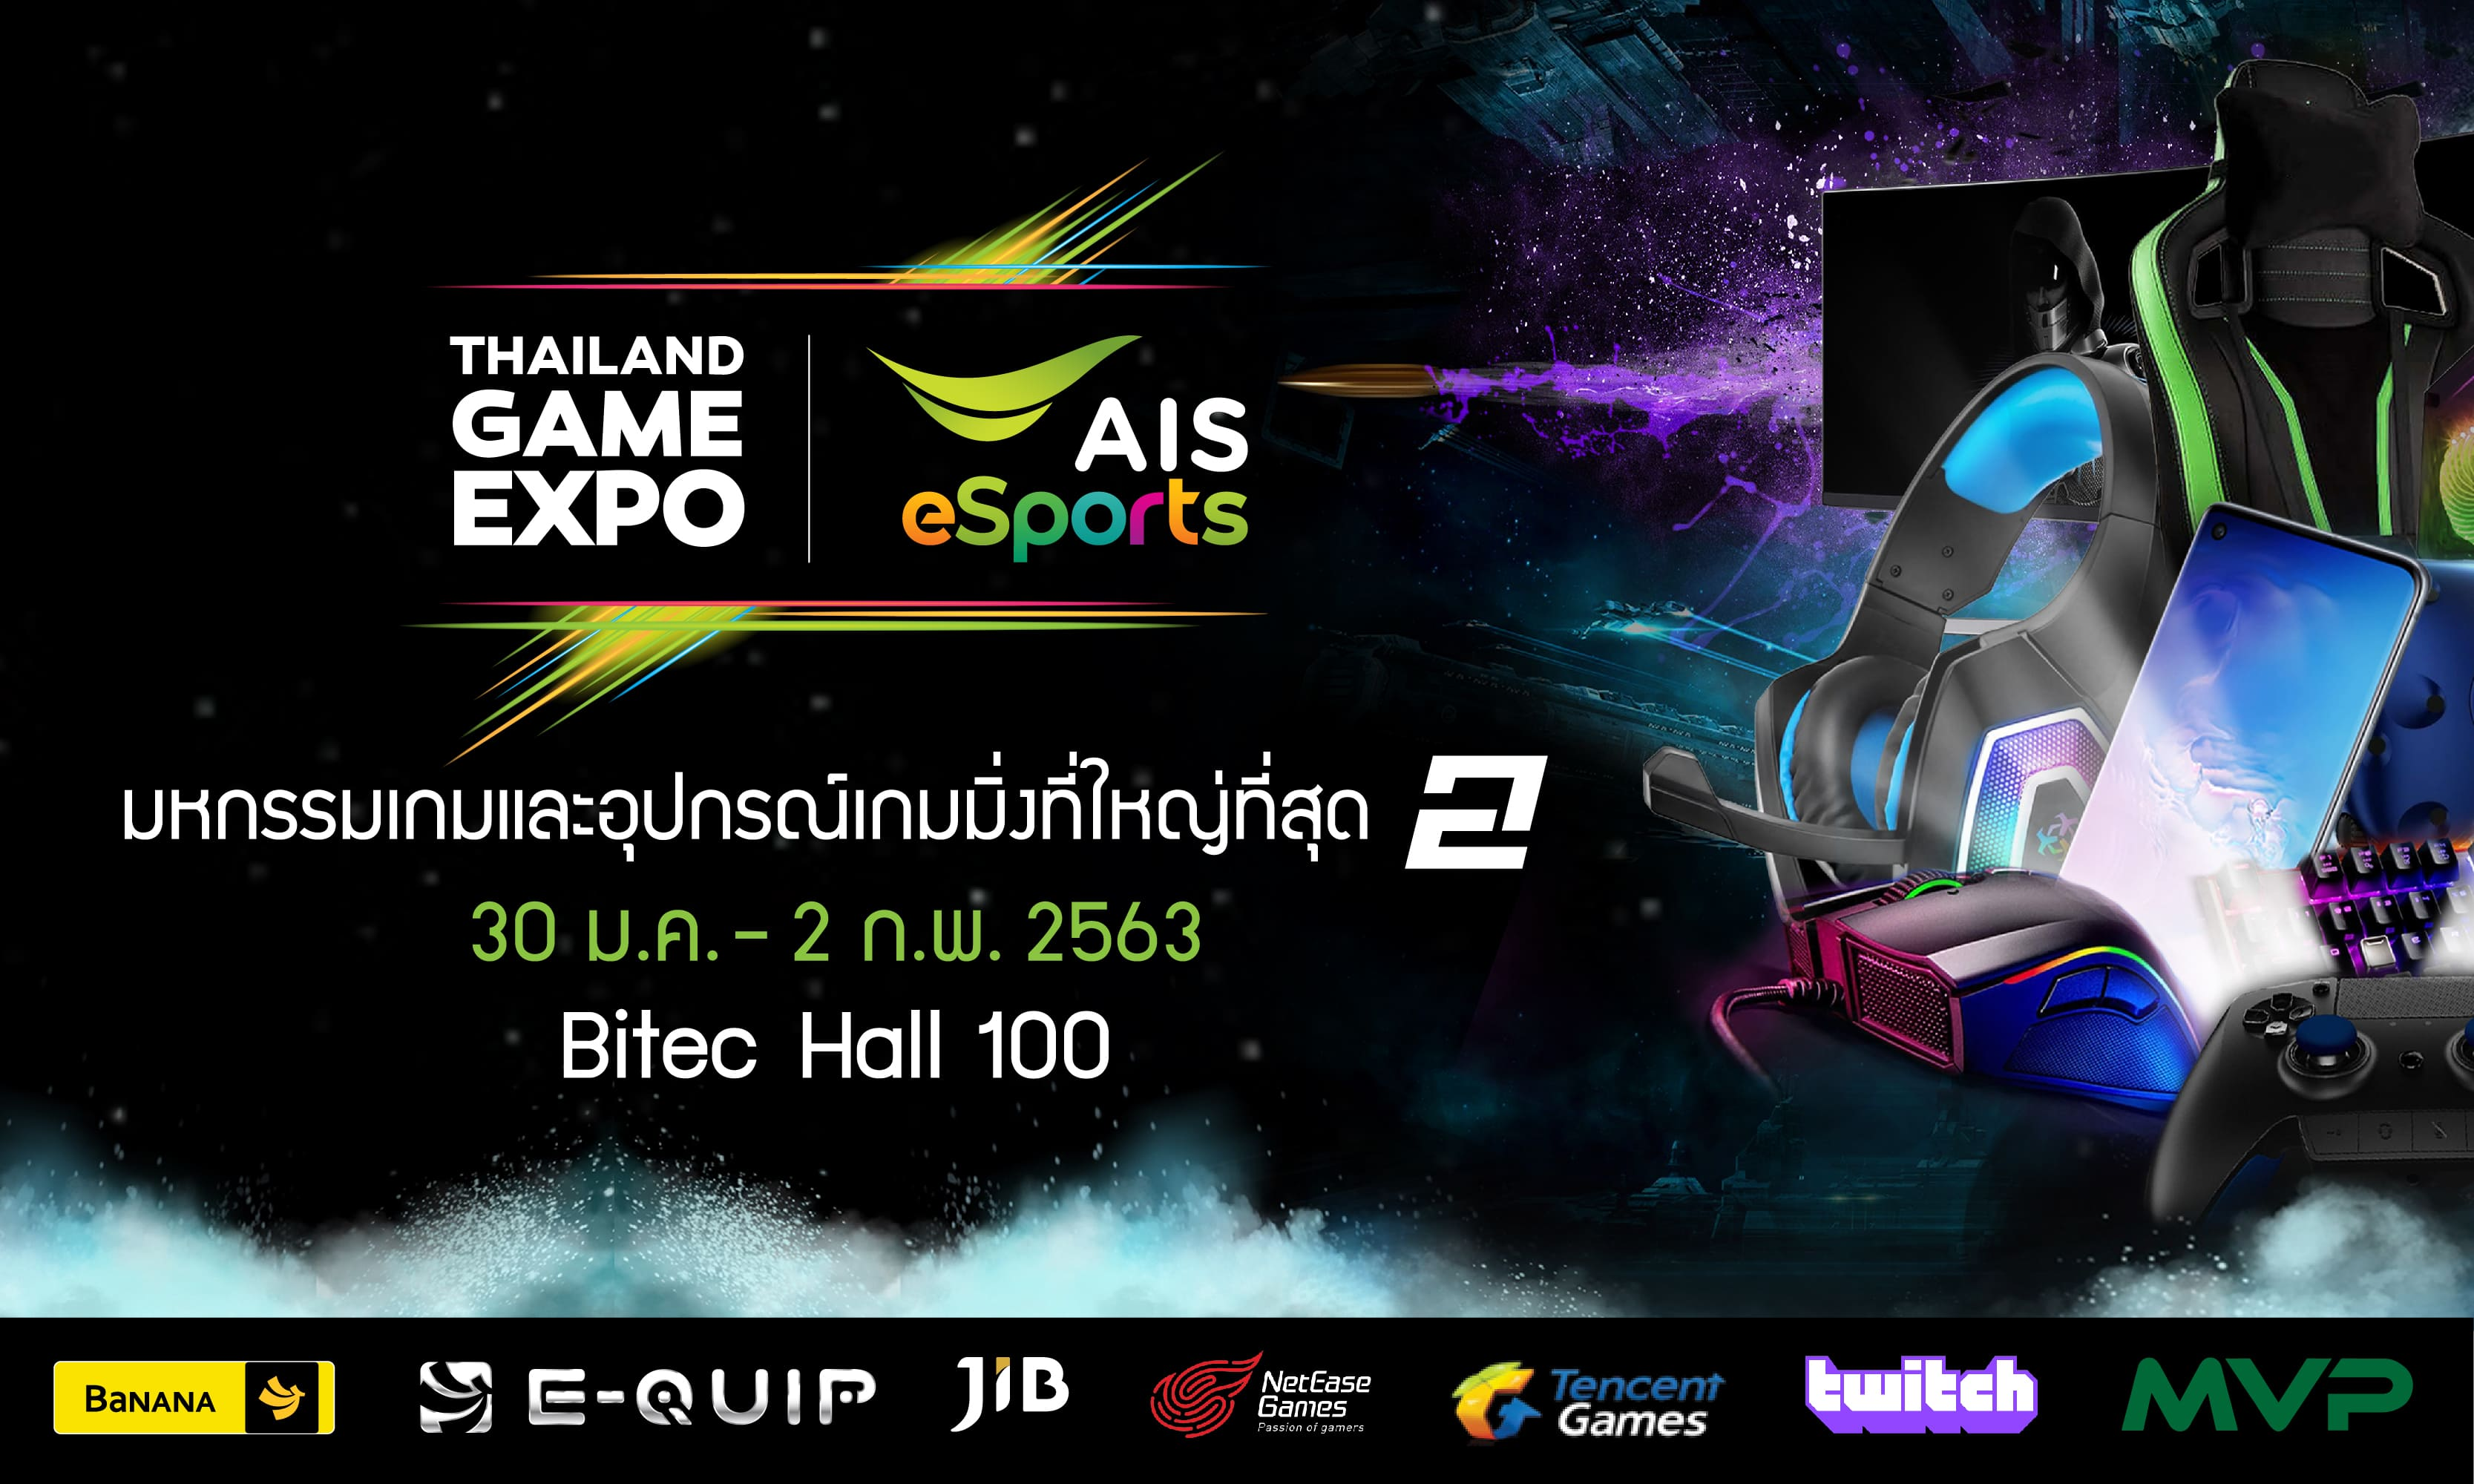 Thailand Game Expo